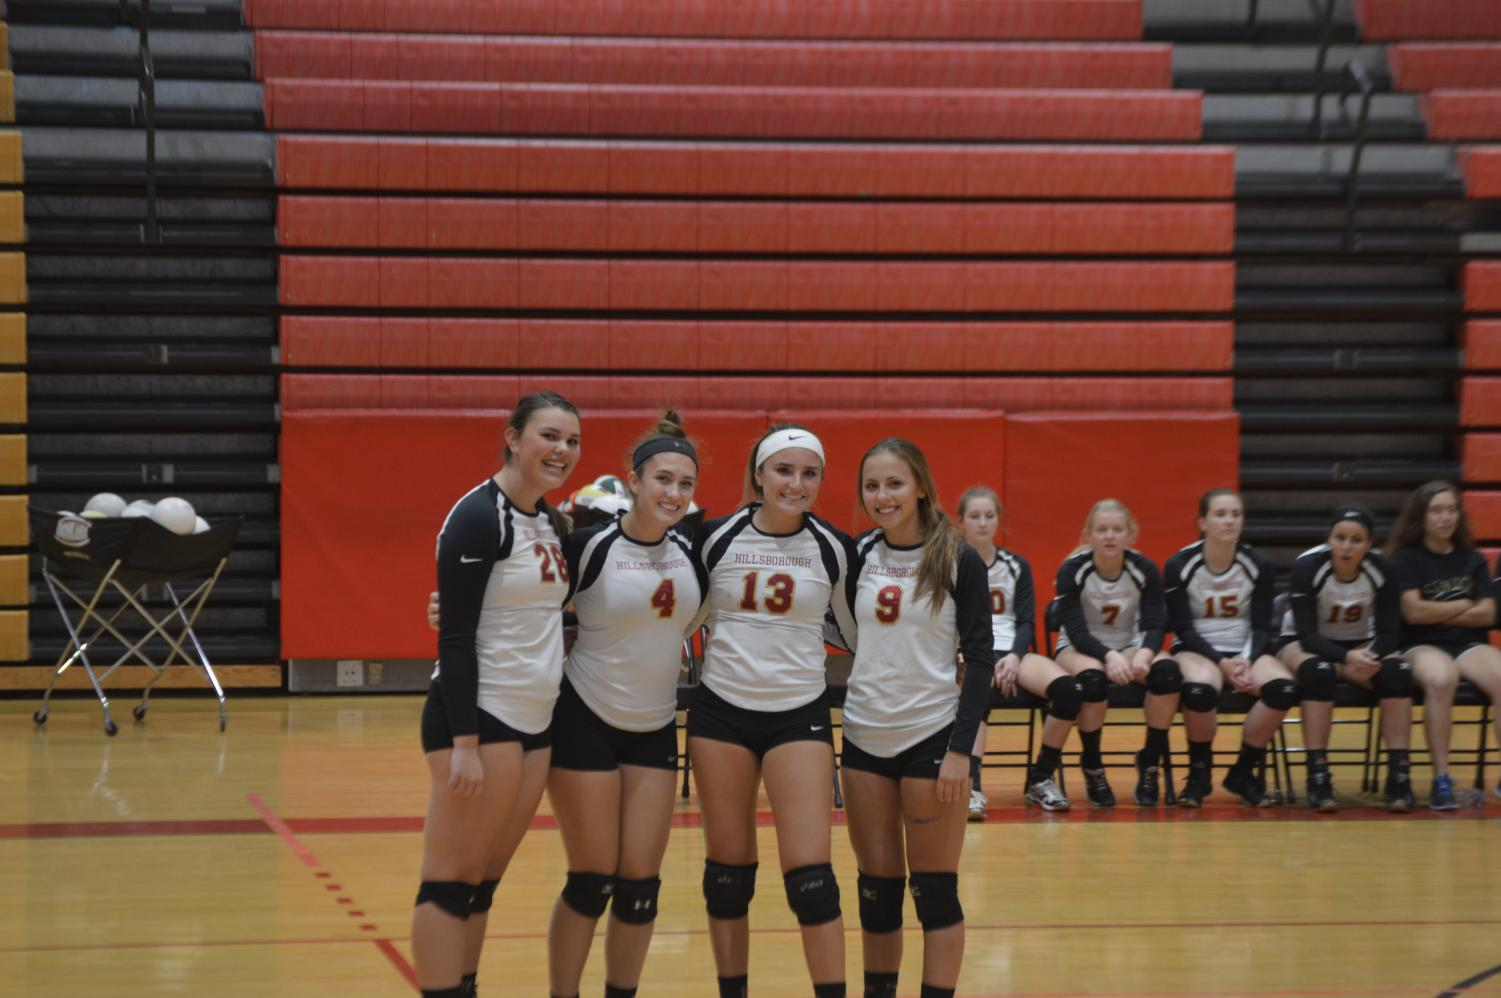 Senior Jillian Boose, juniors Gianna LoCicero and Lenah Chedid, and sophomore Morgan Krempasky quickly pose for a picutre during their senior night game.